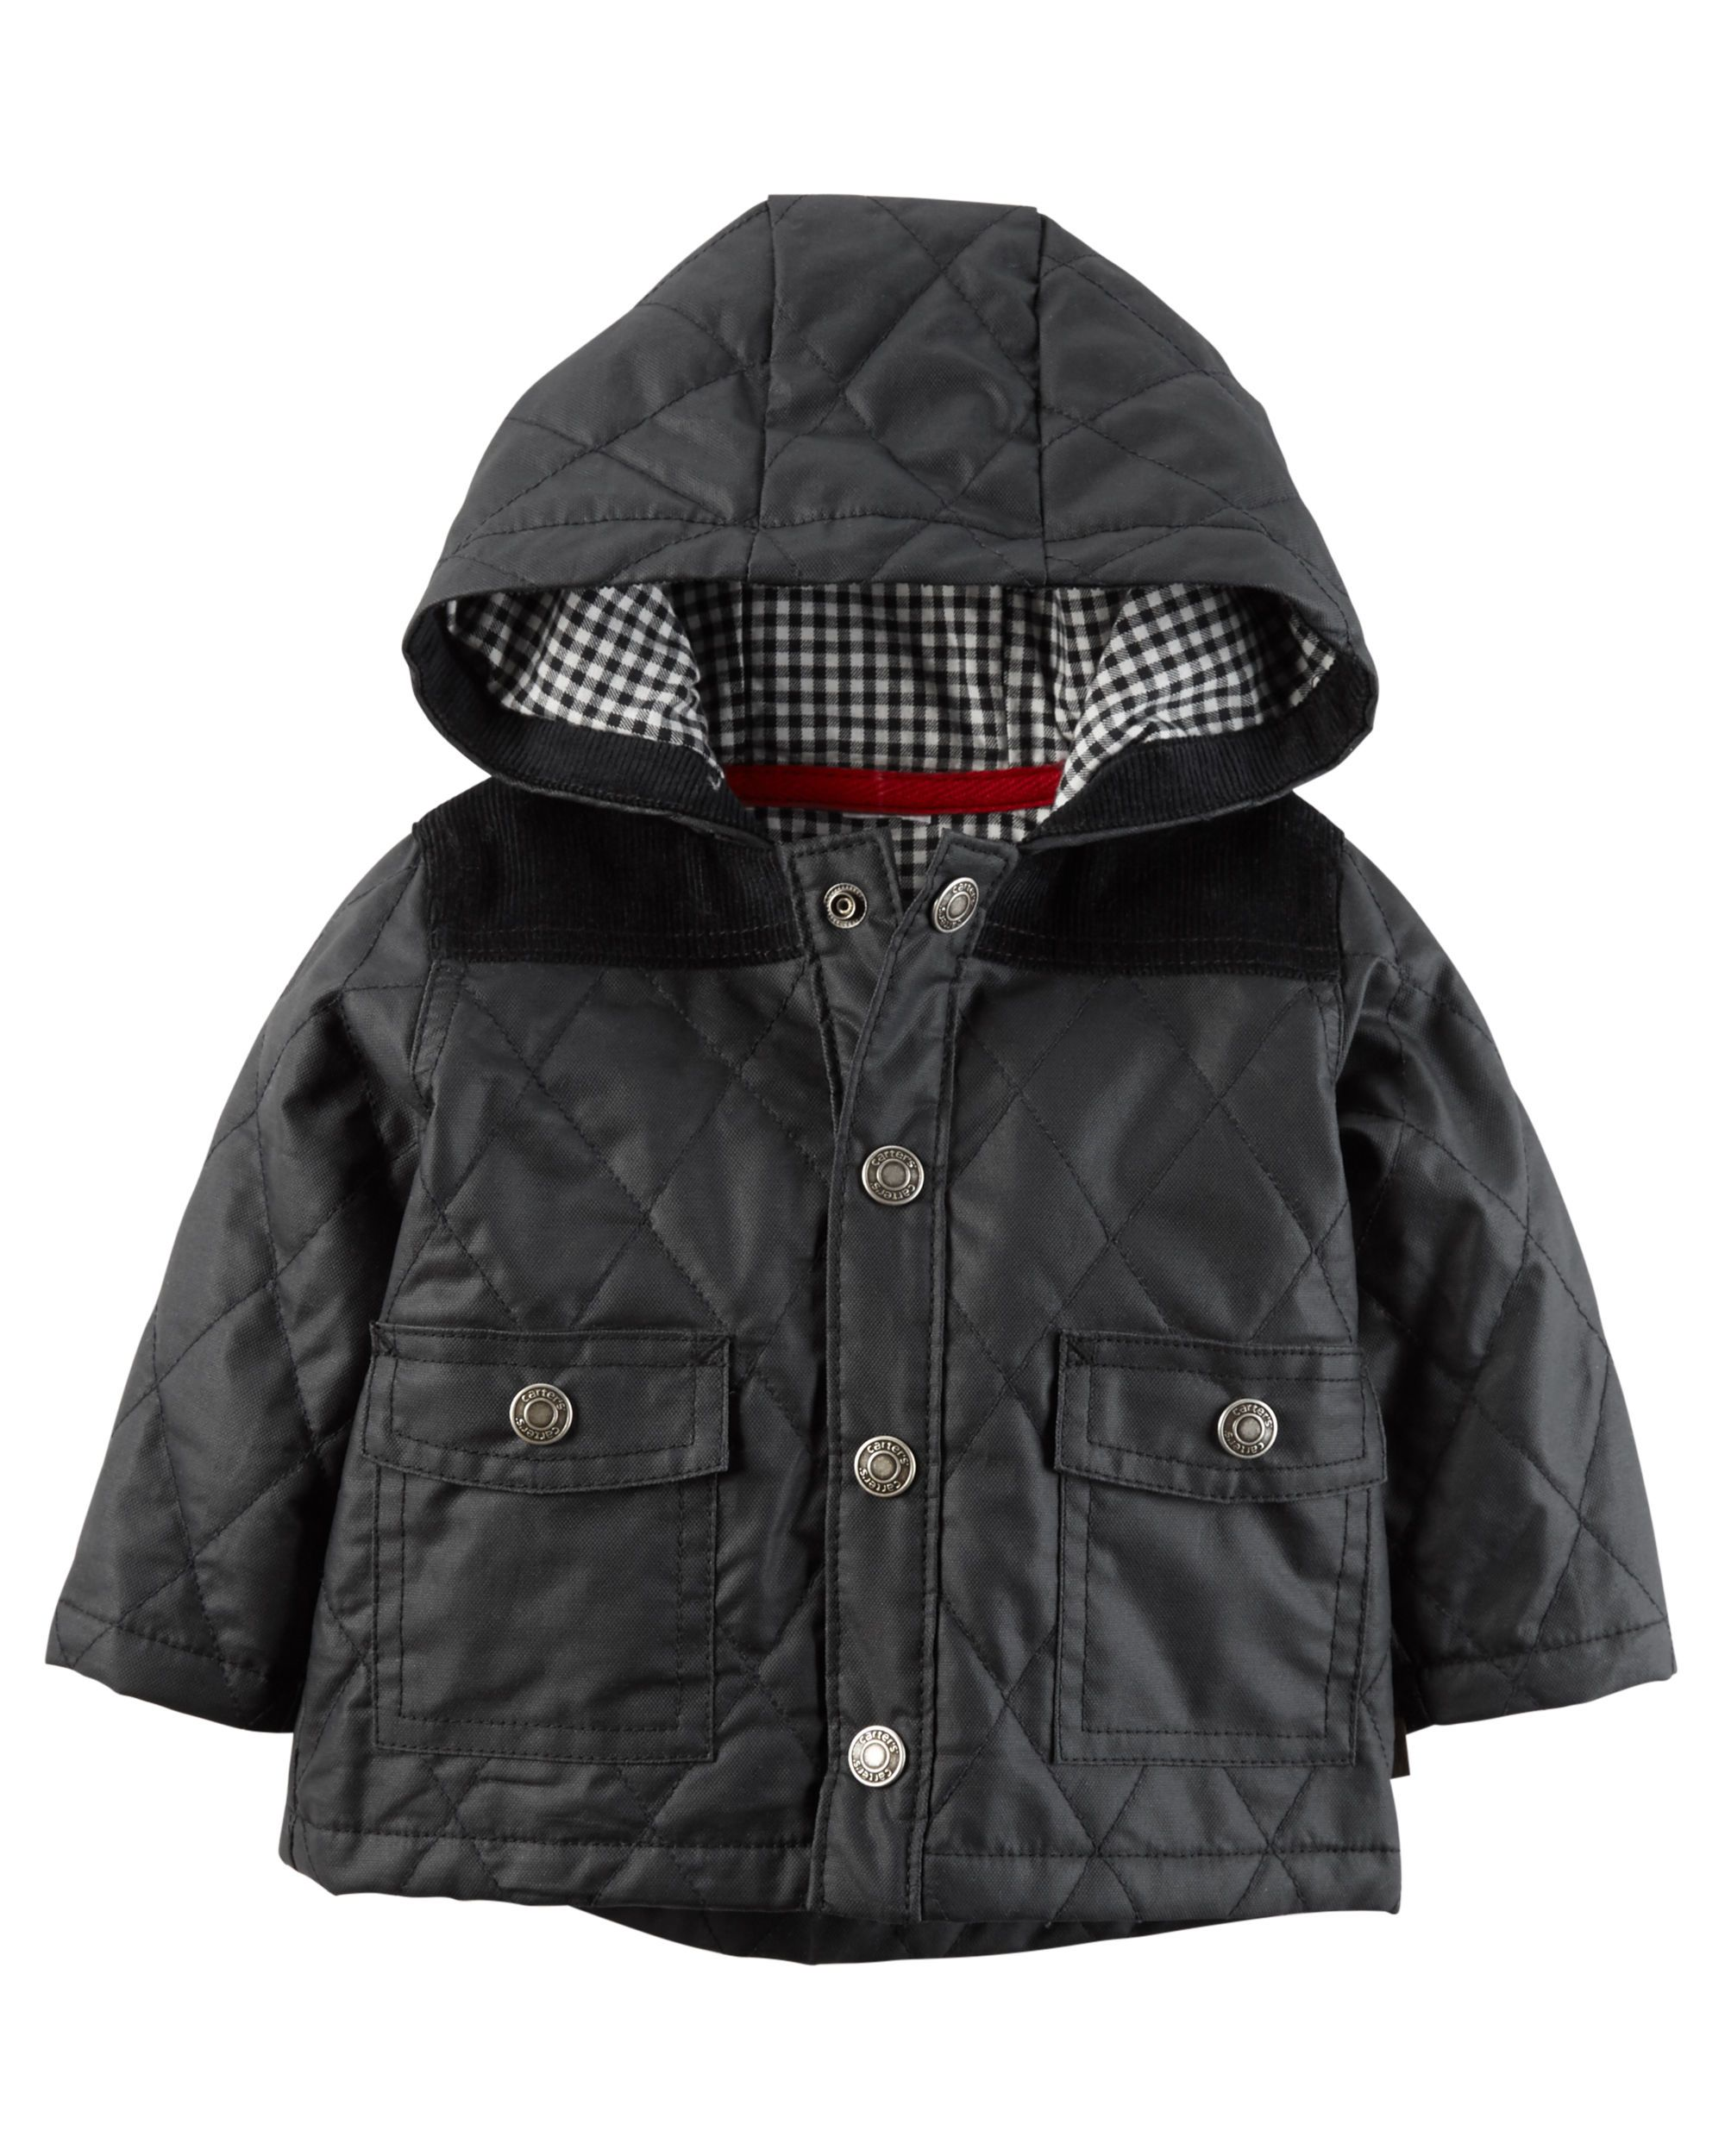 The Perfect Finishing Piece For Any Outfit This Quilted Cardigan Jacket Keeps Him Warm On Brisk Fall Mornin Boys Quilted Jacket Carters Baby Boys Carters Baby